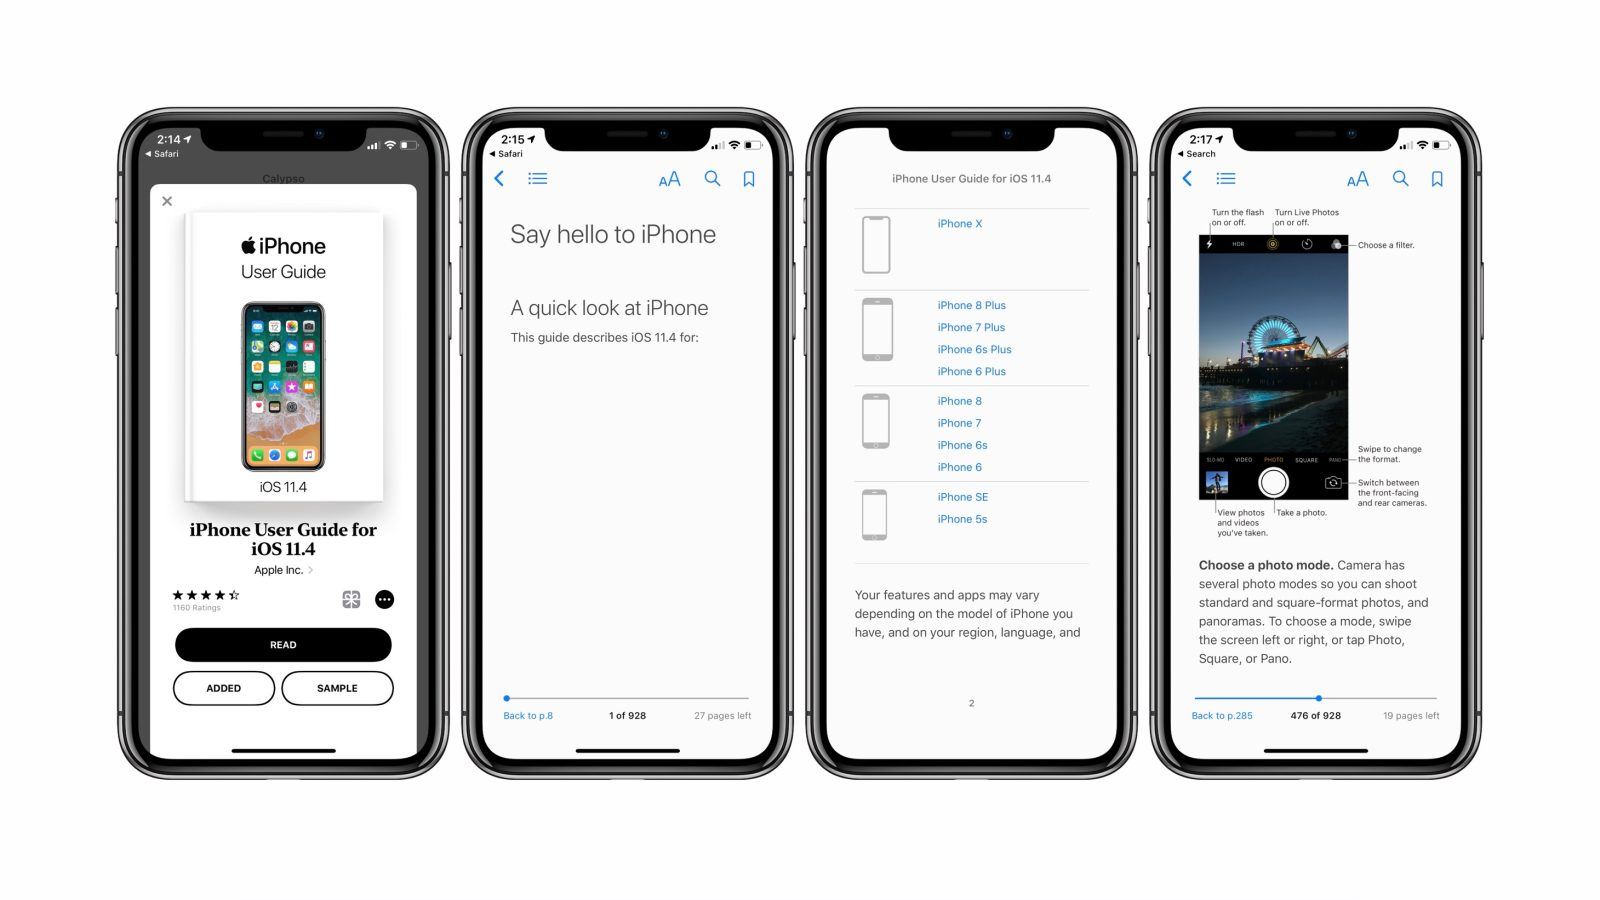 iPhone & iPad: How to get the official Apple user guides for free